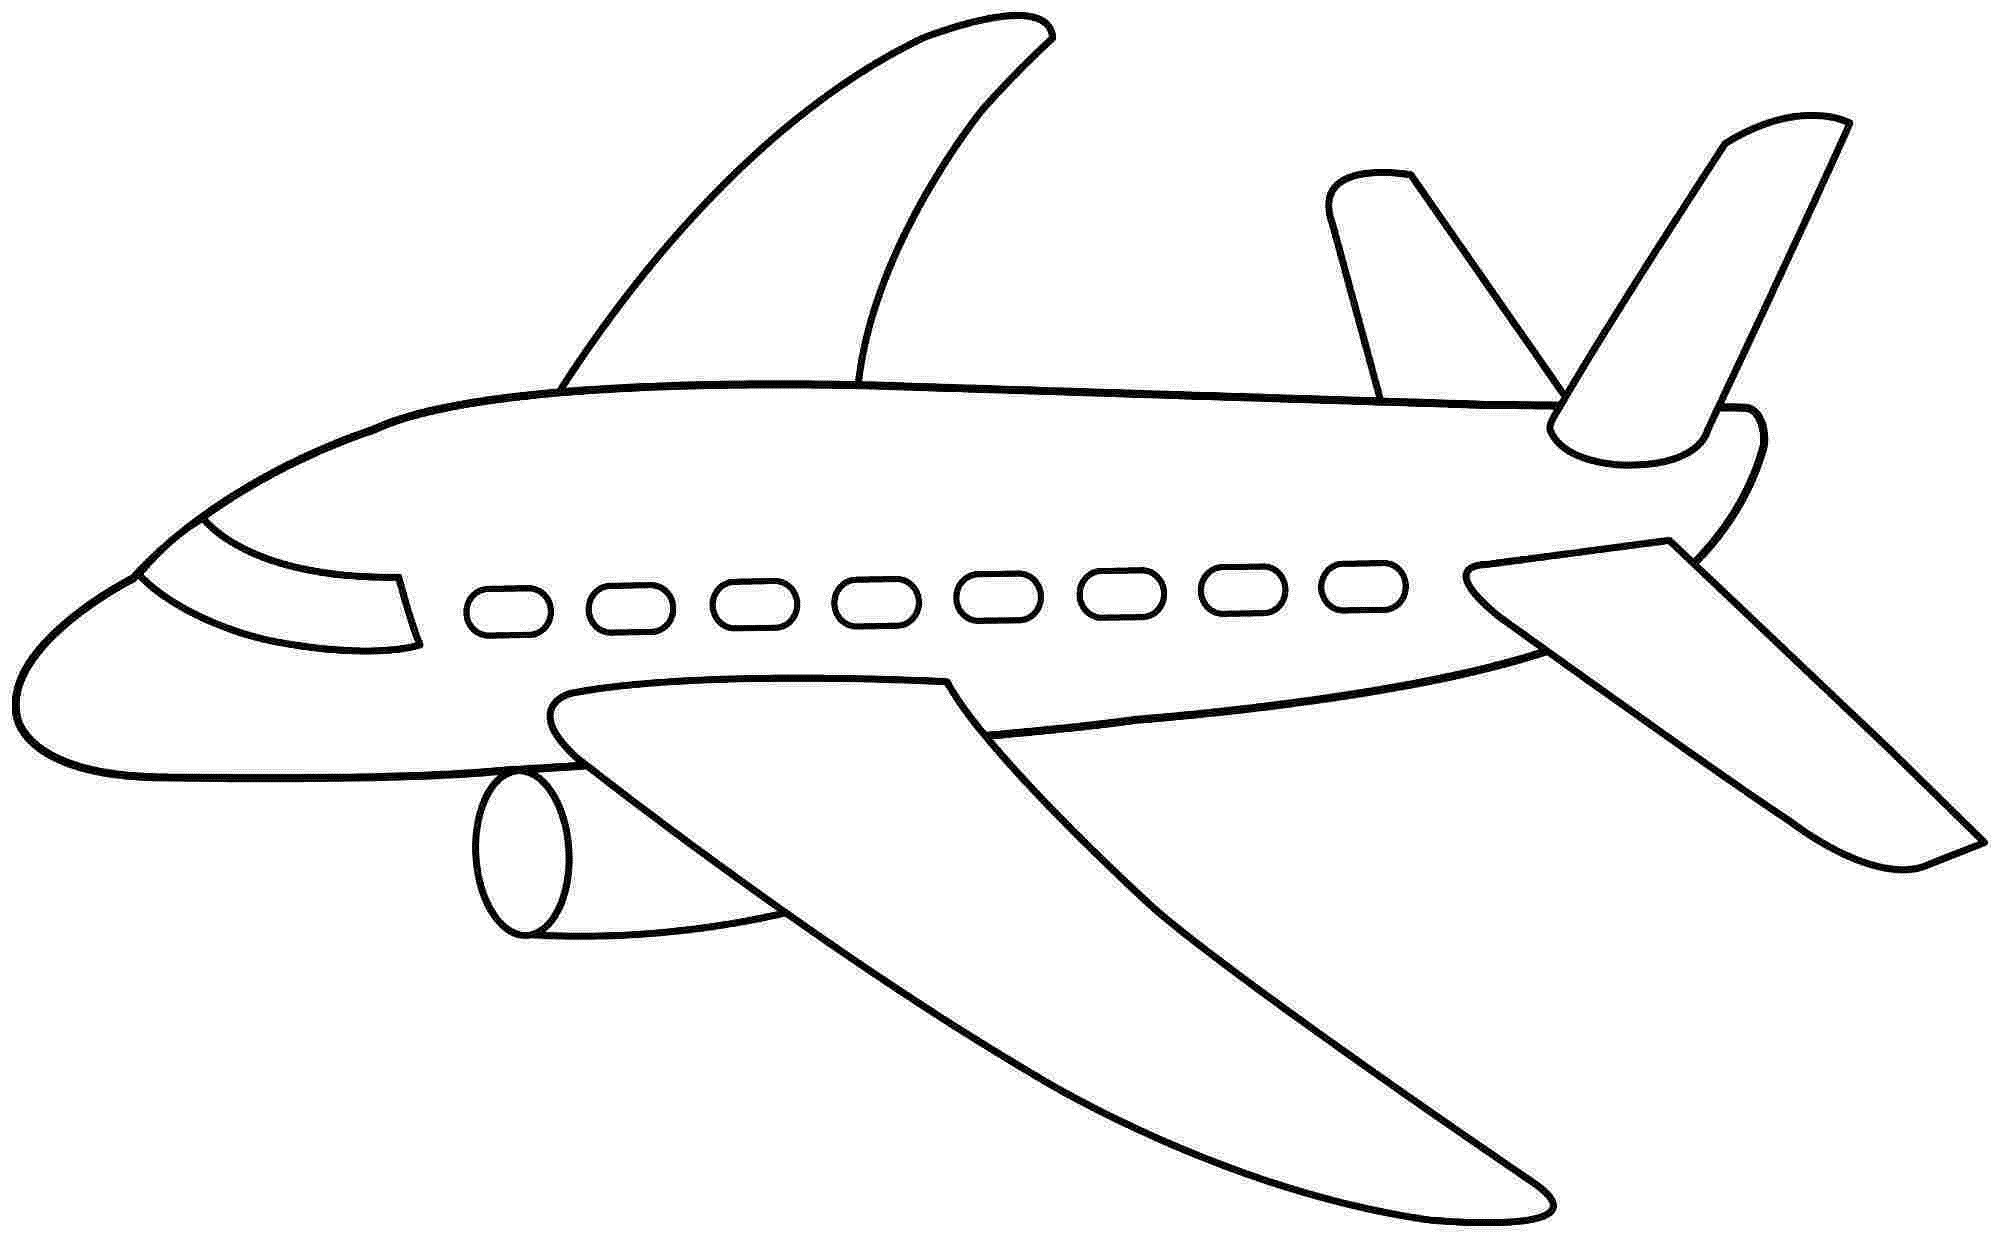 Best ideas about Airplane Coloring Pages For Kids . Save or Pin Airplane Coloring Pages for Kids Printable Now.